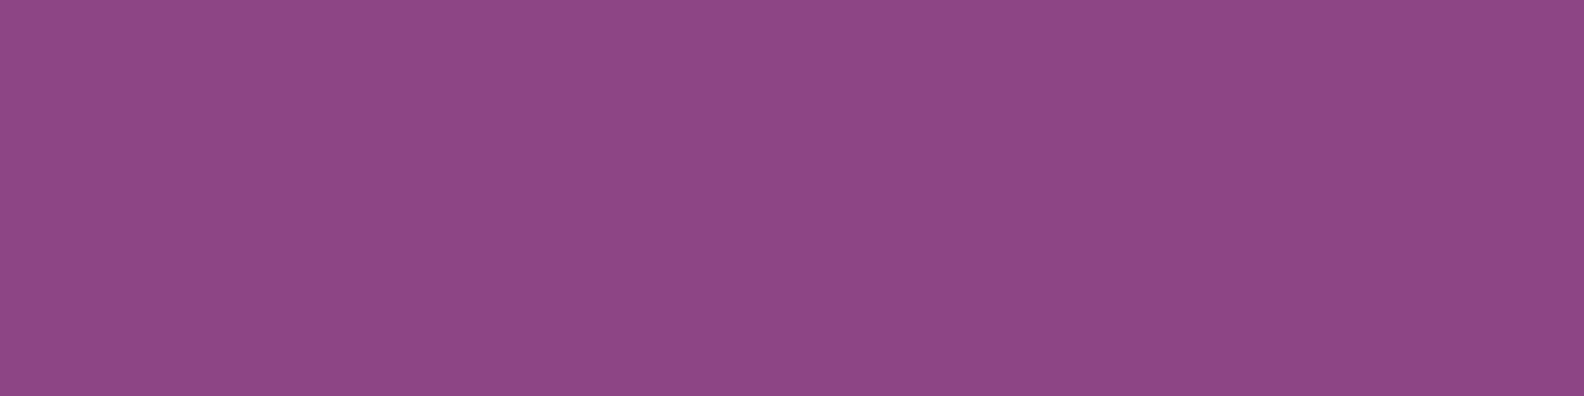 1584x396 Plum Traditional Solid Color Background